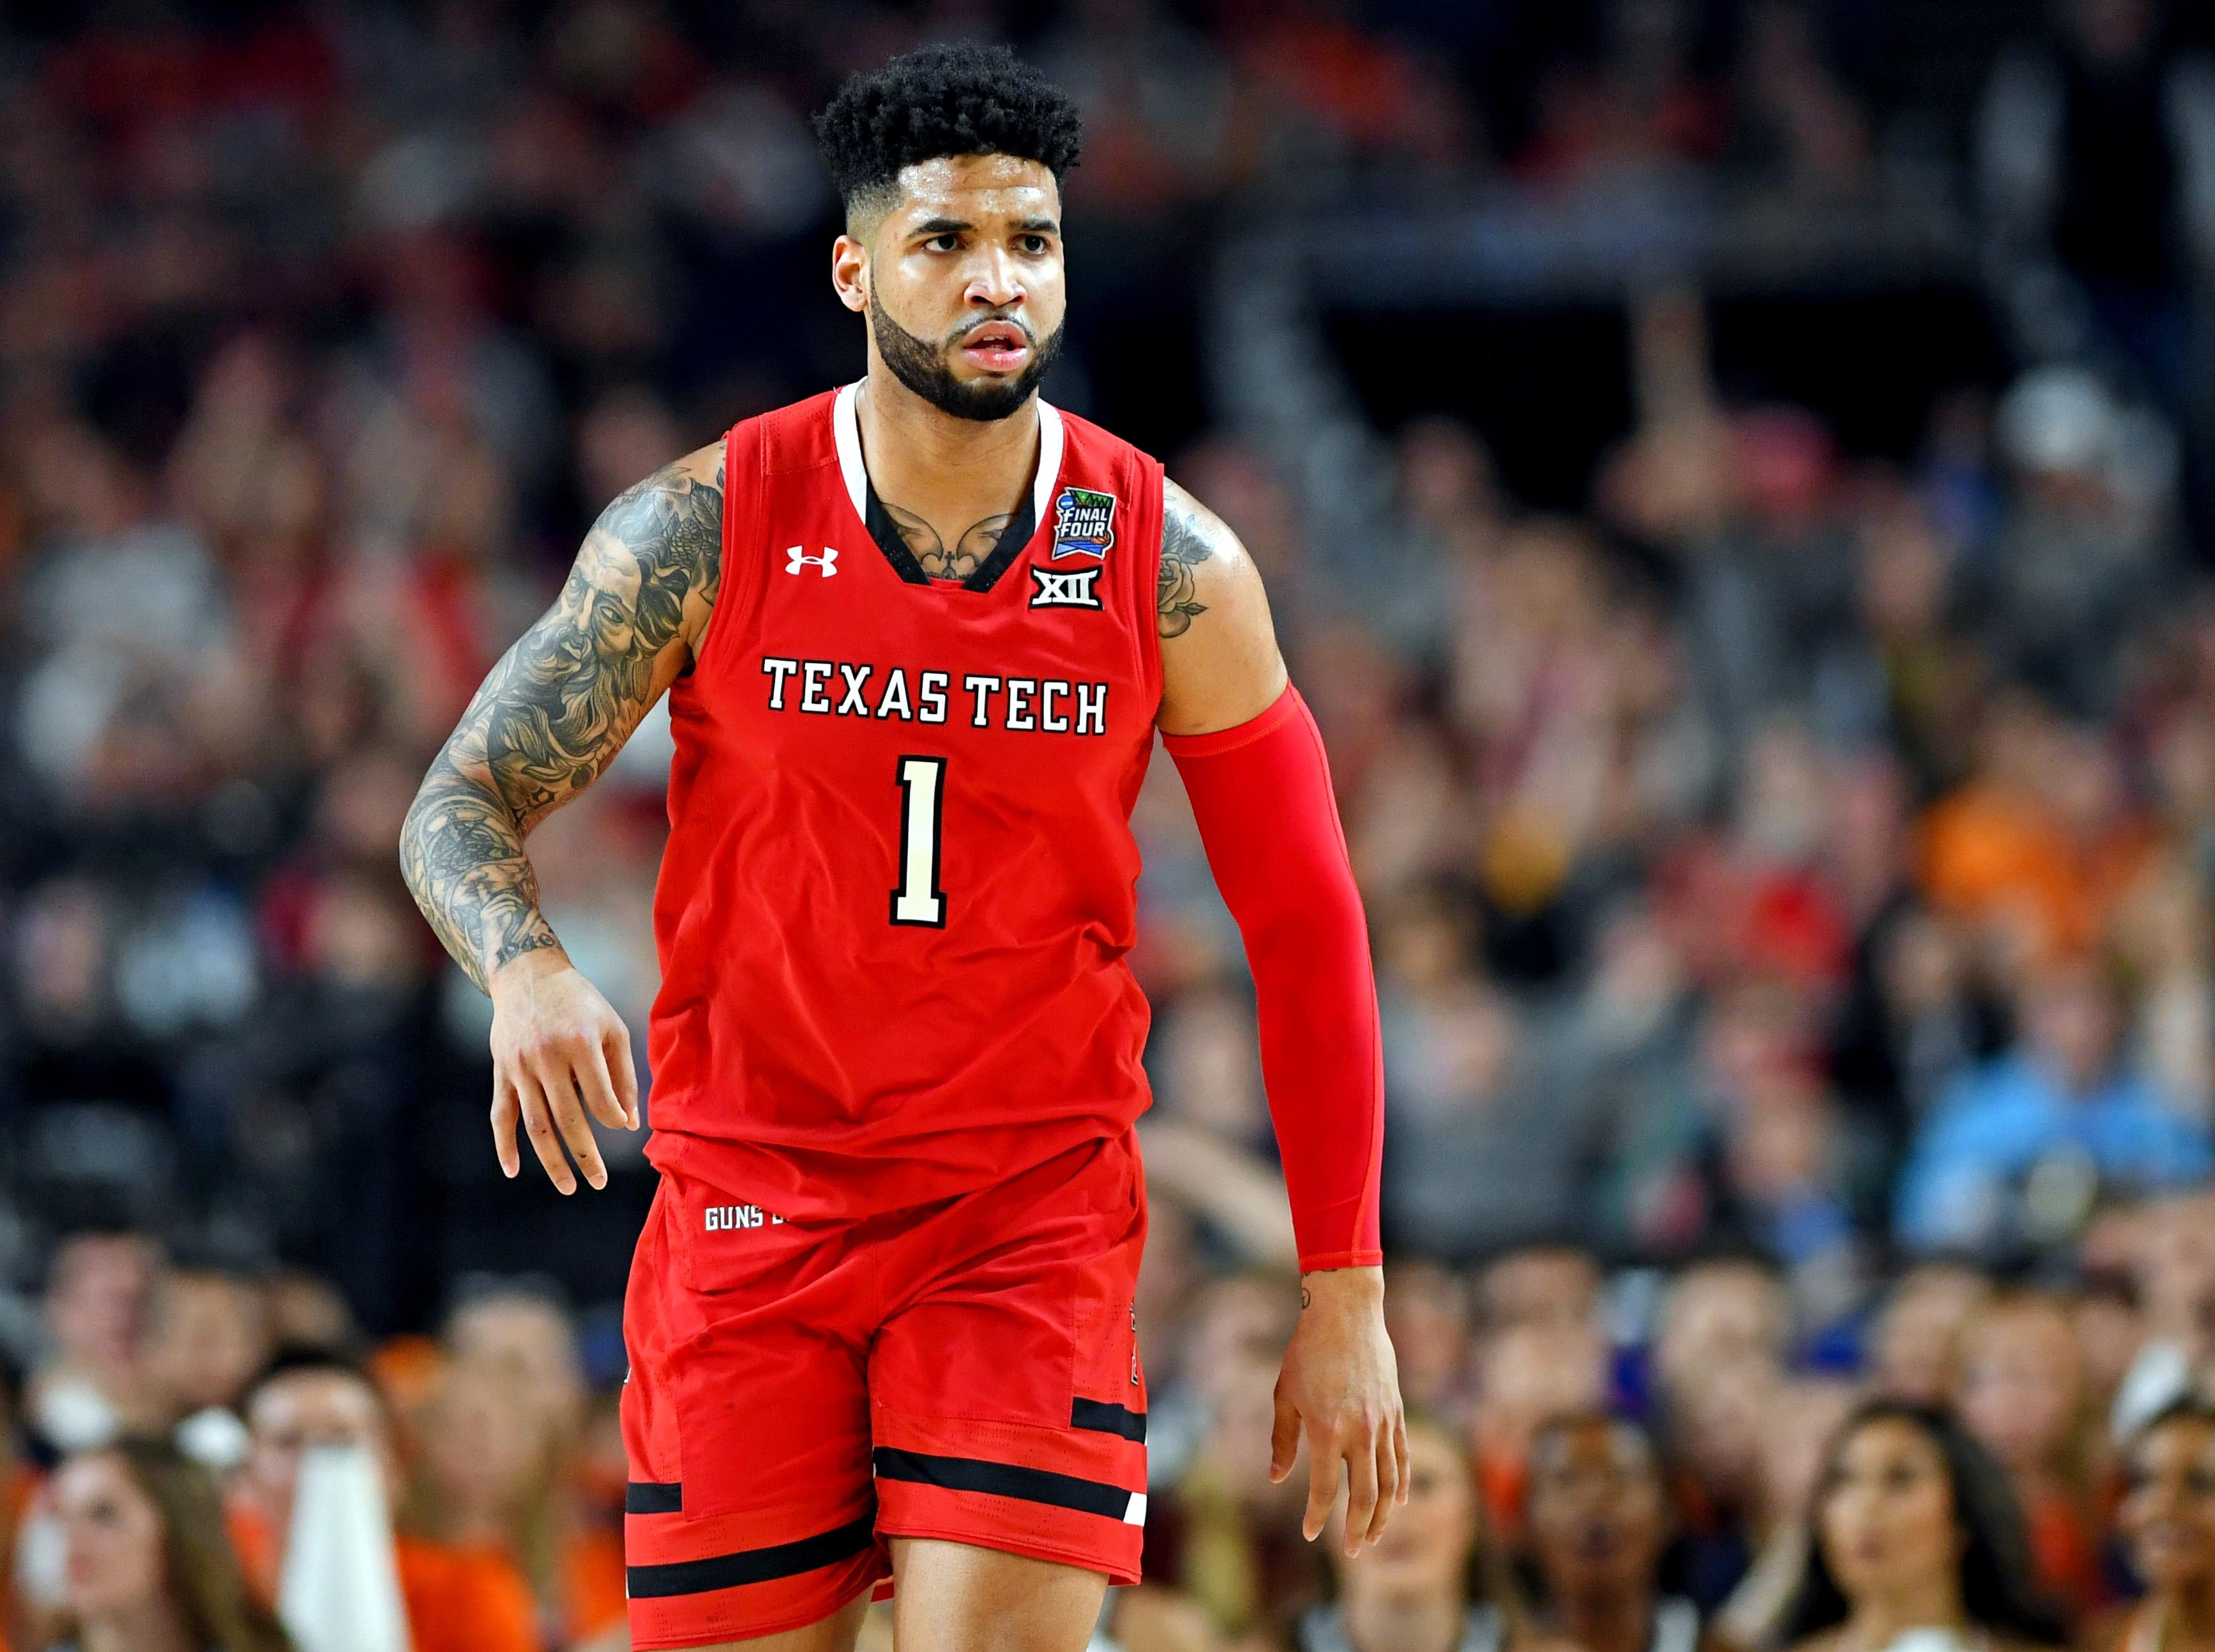 Apr 8, 2019; Minneapolis, MN, USA; Texas Tech Red Raiders guard Brandone Francis (1) reacts after a play during the first half against the Virginia Cavaliers in the championship game of the 2019 men's Final Four at US Bank Stadium. Mandatory Credit: Bob Donnan-USA TODAY Sports